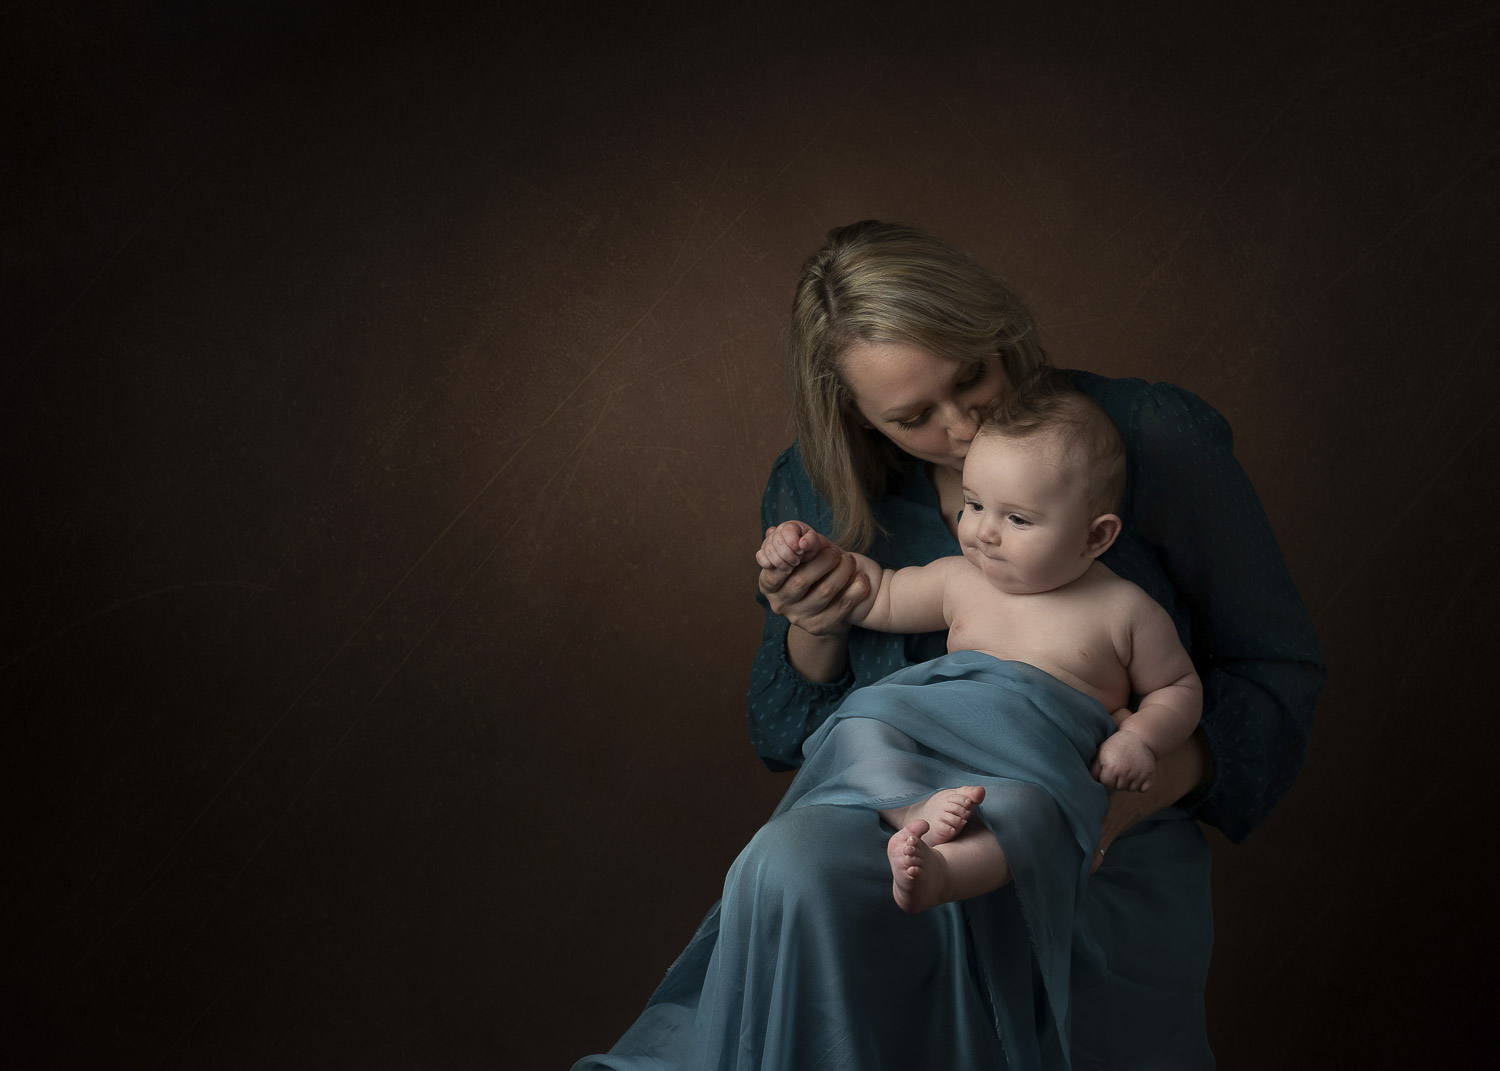 Mother and child portrait in the studio